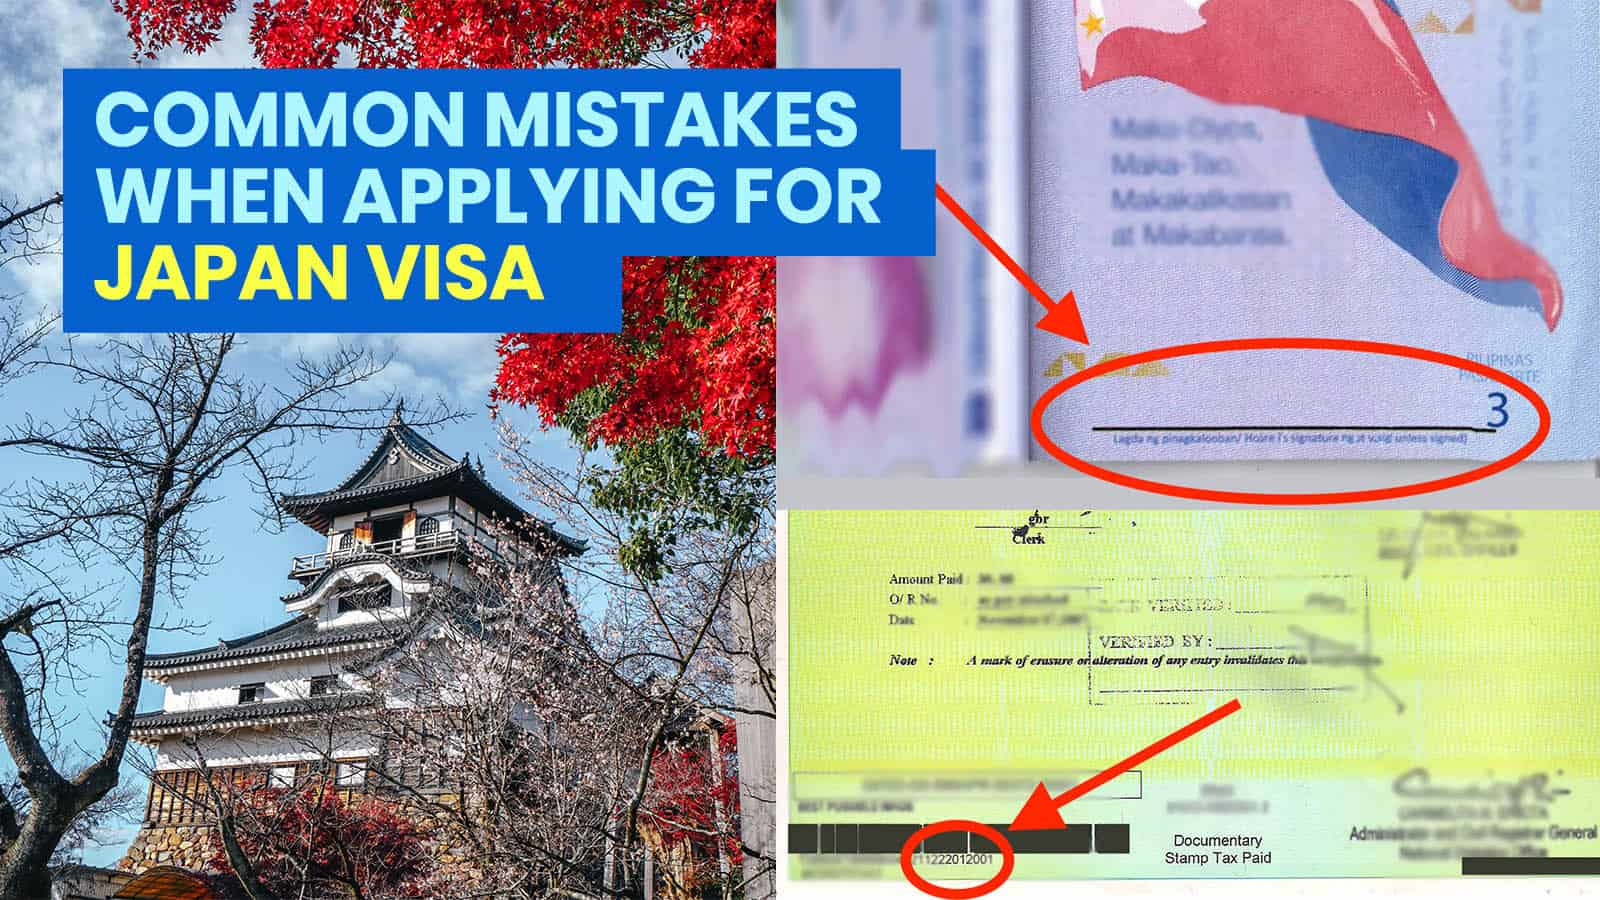 Avoid These 12 Common Mistakes When Applying For A Japan Visa The Poor Traveler Itinerary Blog